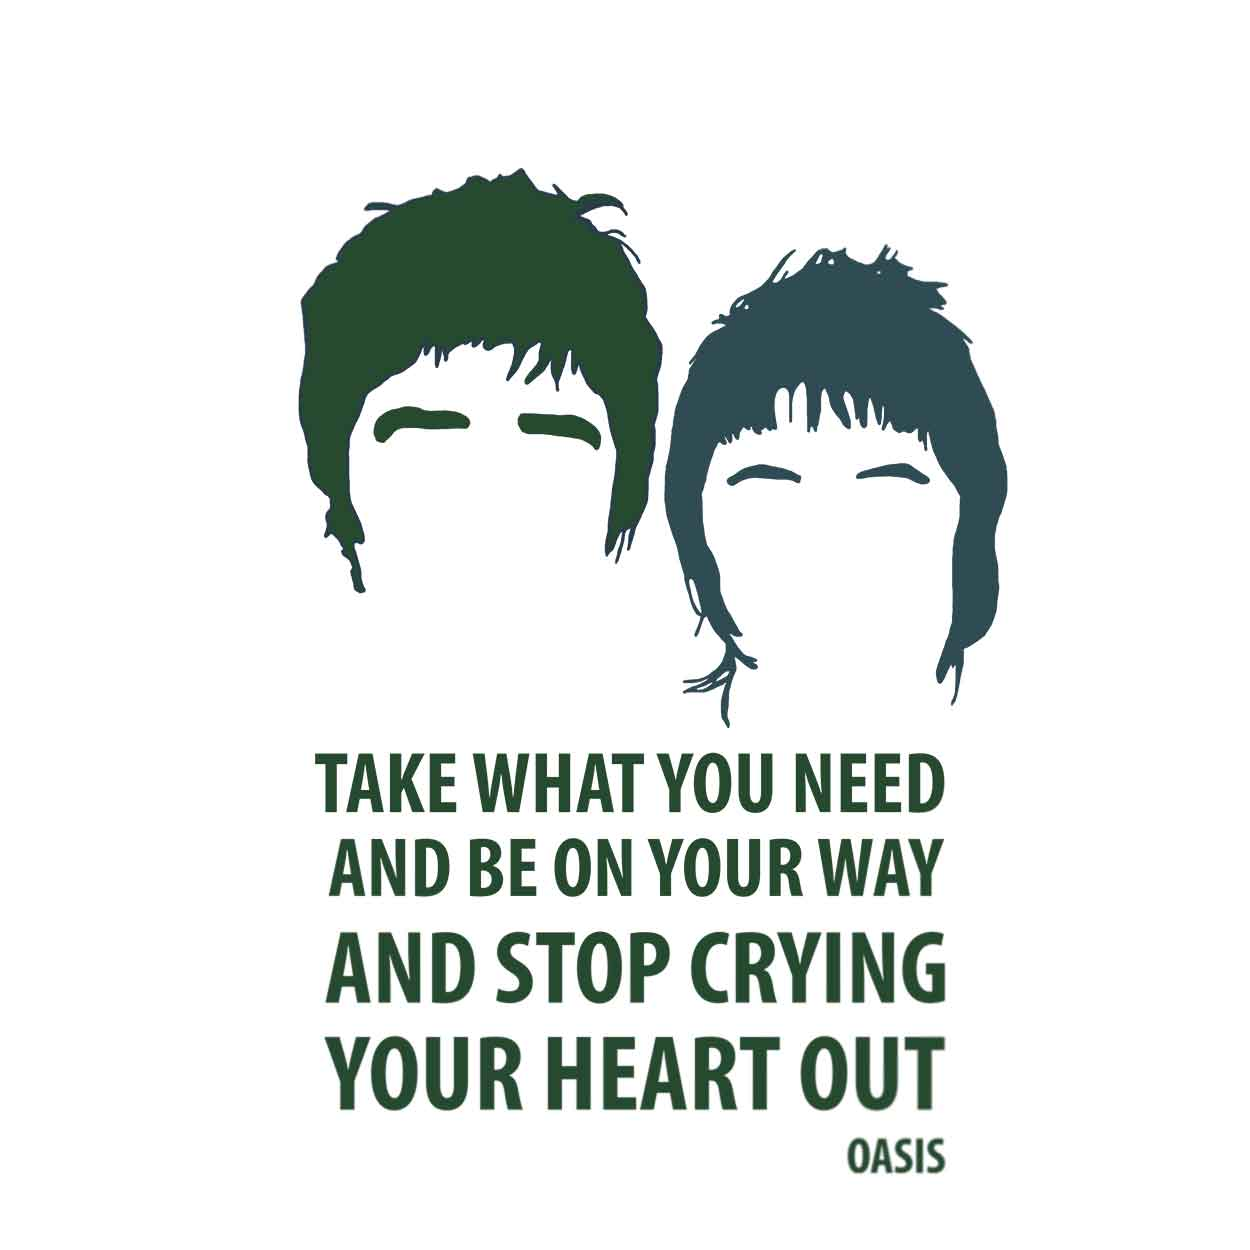 Camiseta - Stop Crying Your Heart Out - Oasis - Feminino